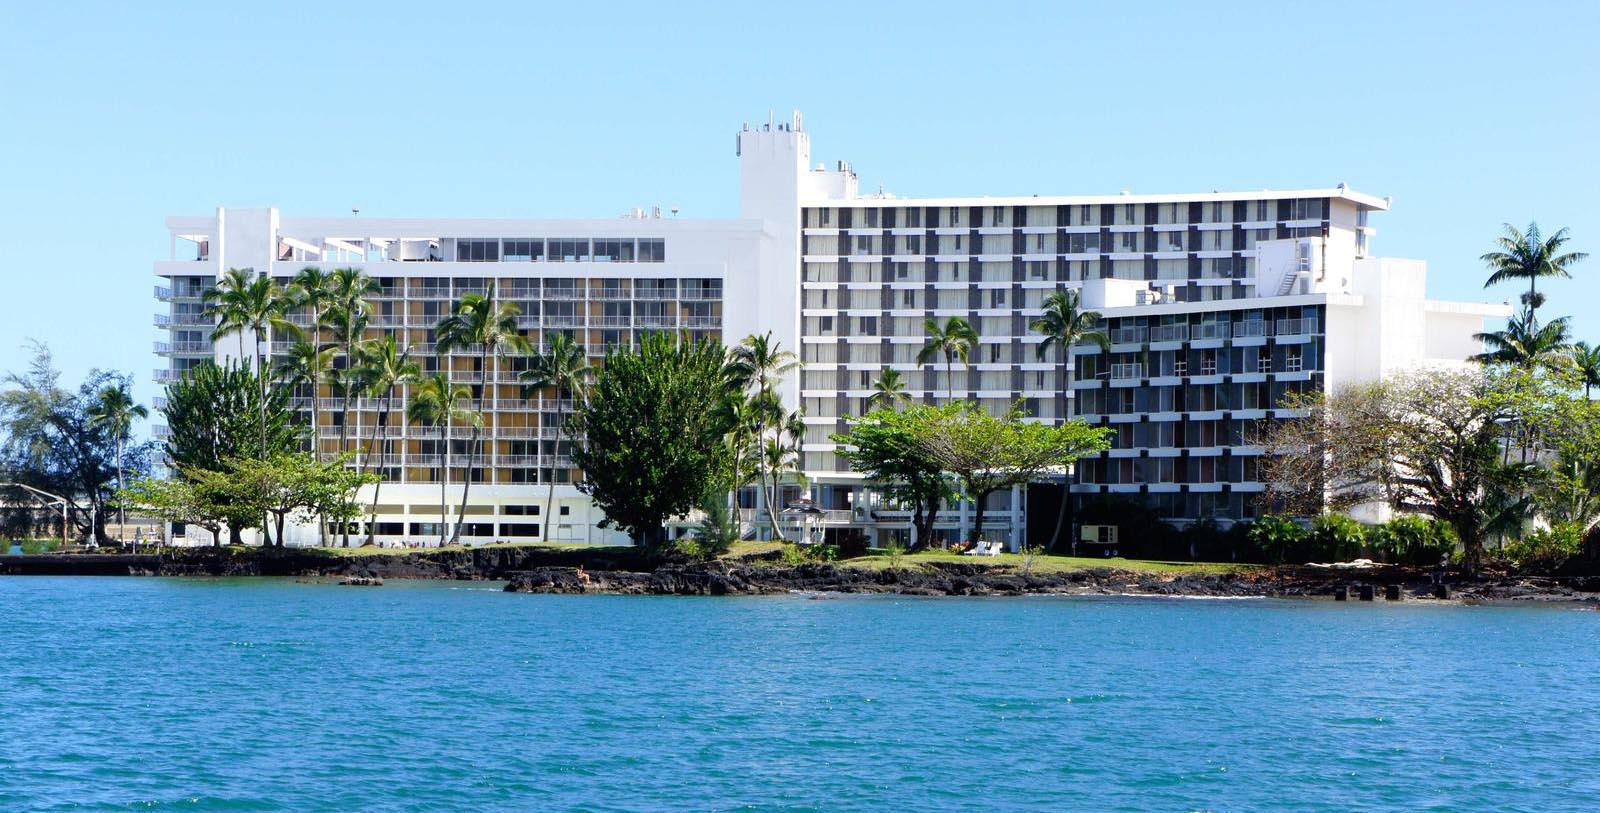 Image of hotel exterior at Grand Naniloa Hotel Hilo, a DoubleTree by Hilton, 1939, Member of Historic Hotels of America, in Hilo, Hawaii, Discover